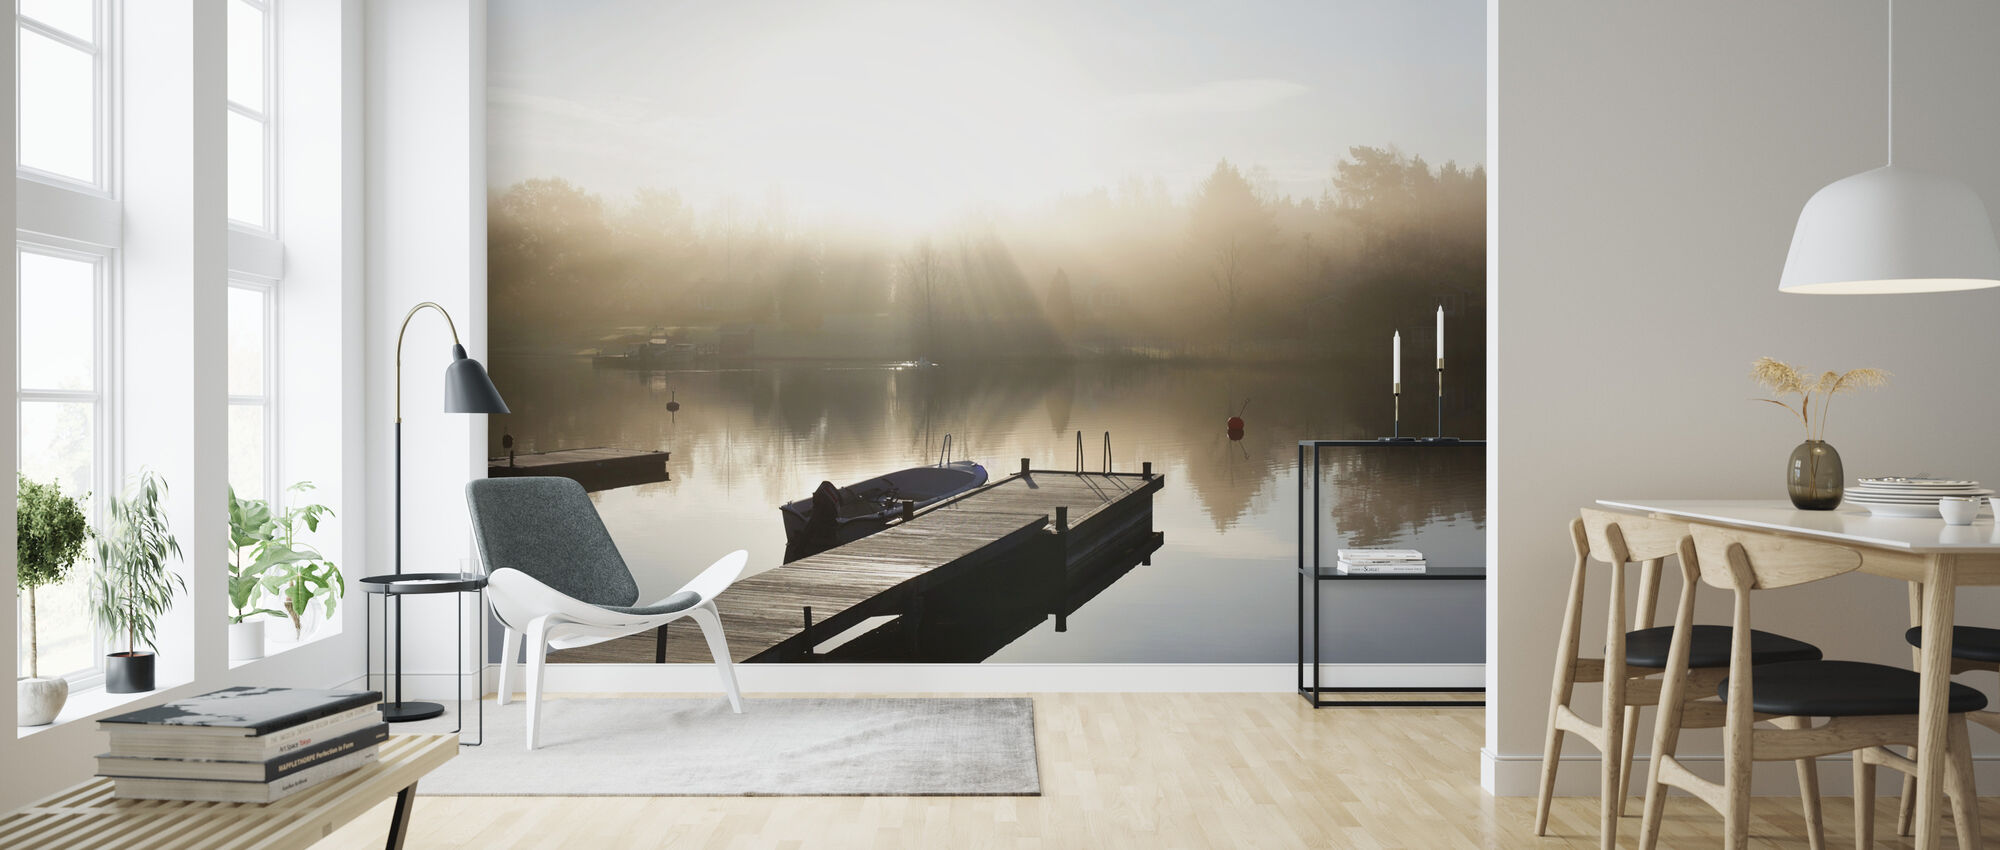 Pier in Roslagen, Sweden - Wallpaper - Living Room